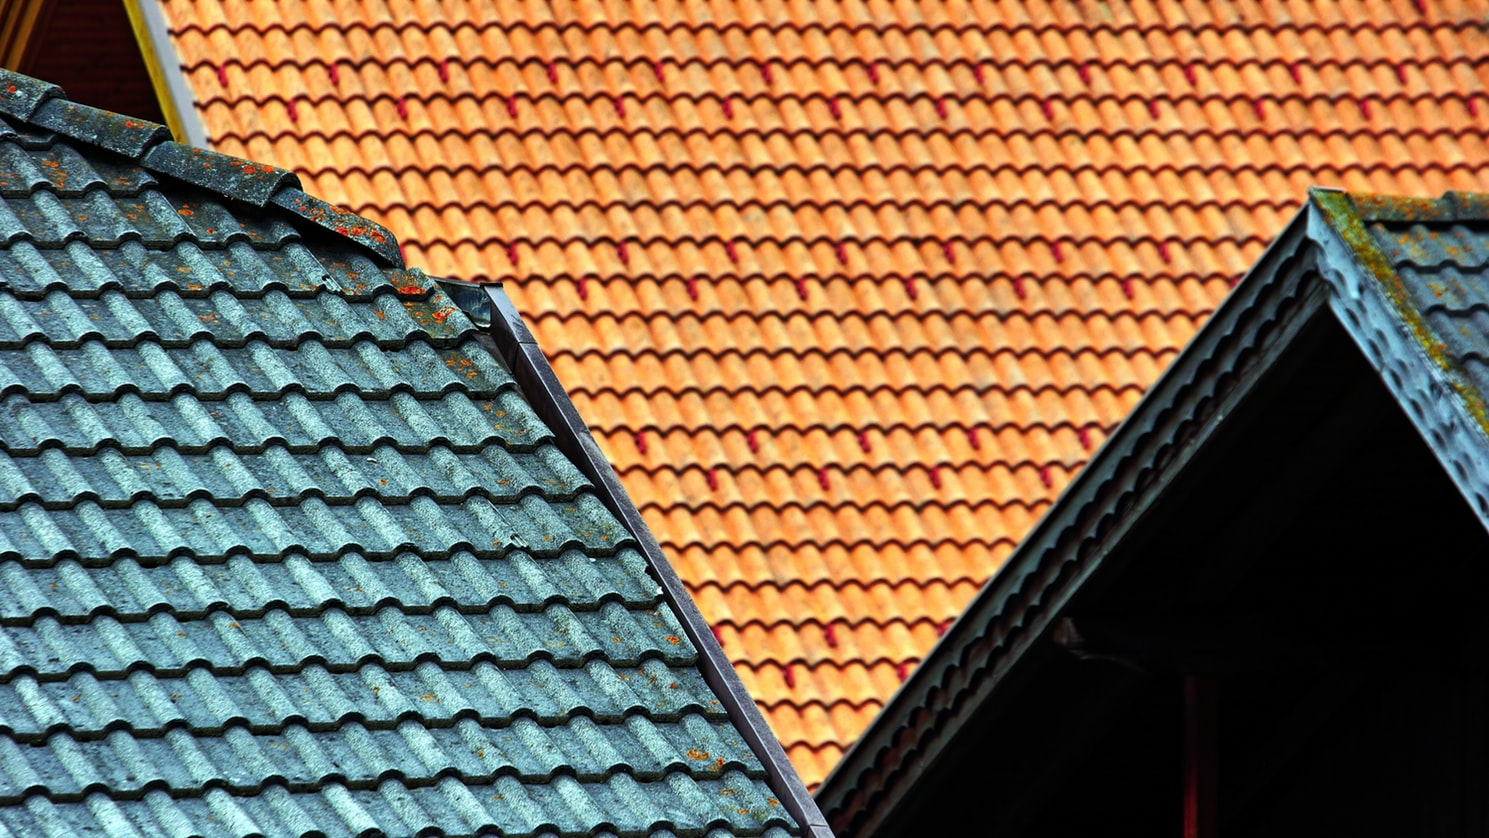 3 Reasons Your Roof Needs Replacing